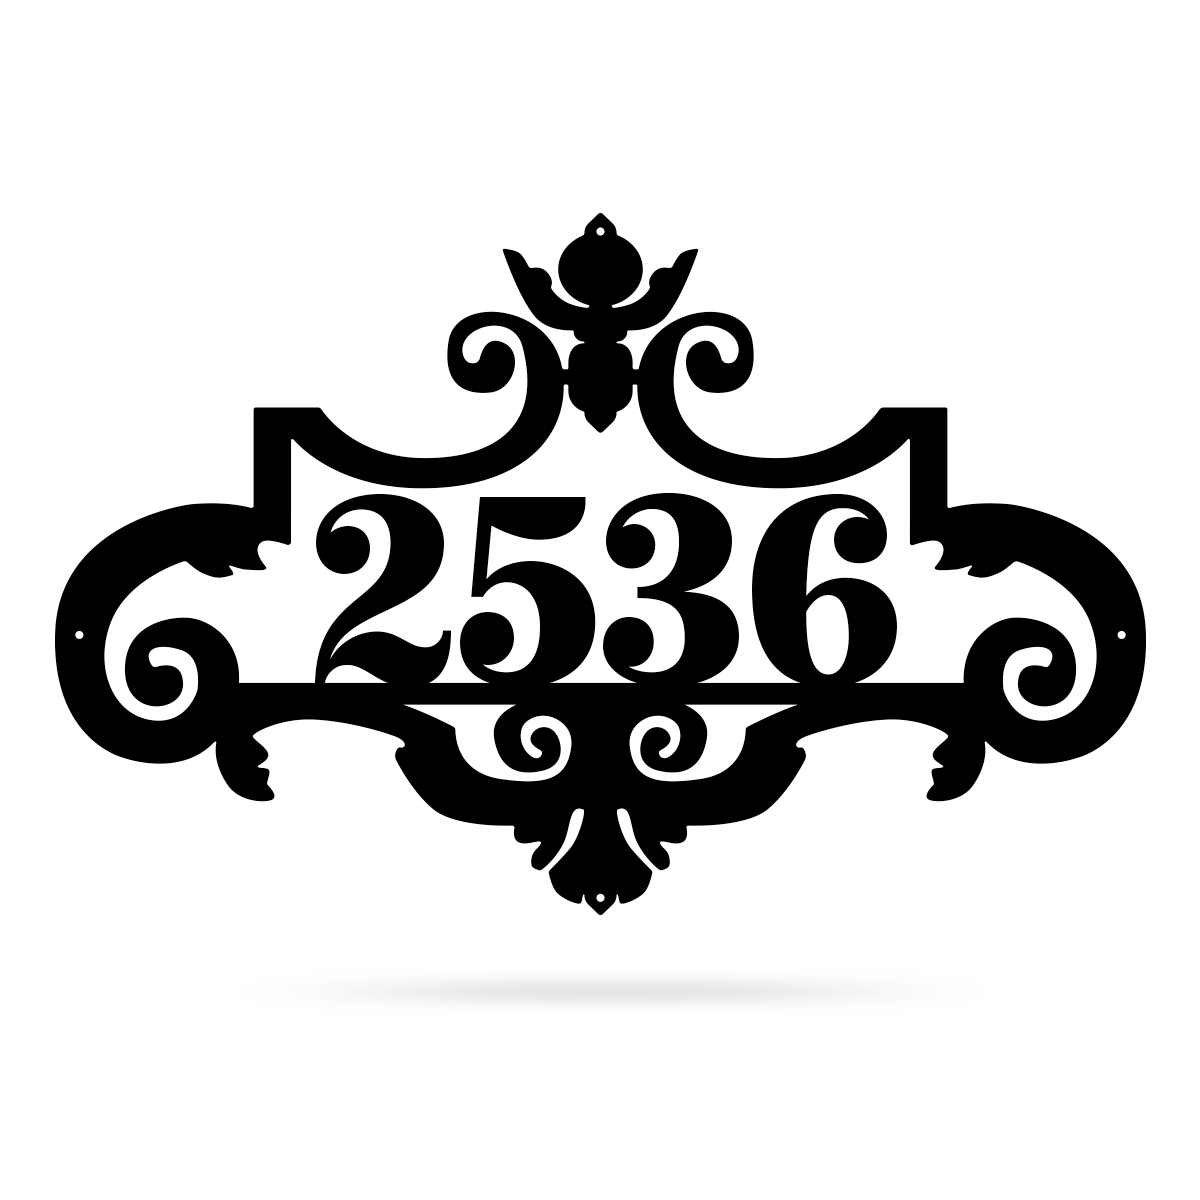 "Ornate Address Monogram 15.5""x24"" / Black - RealSteel Center"